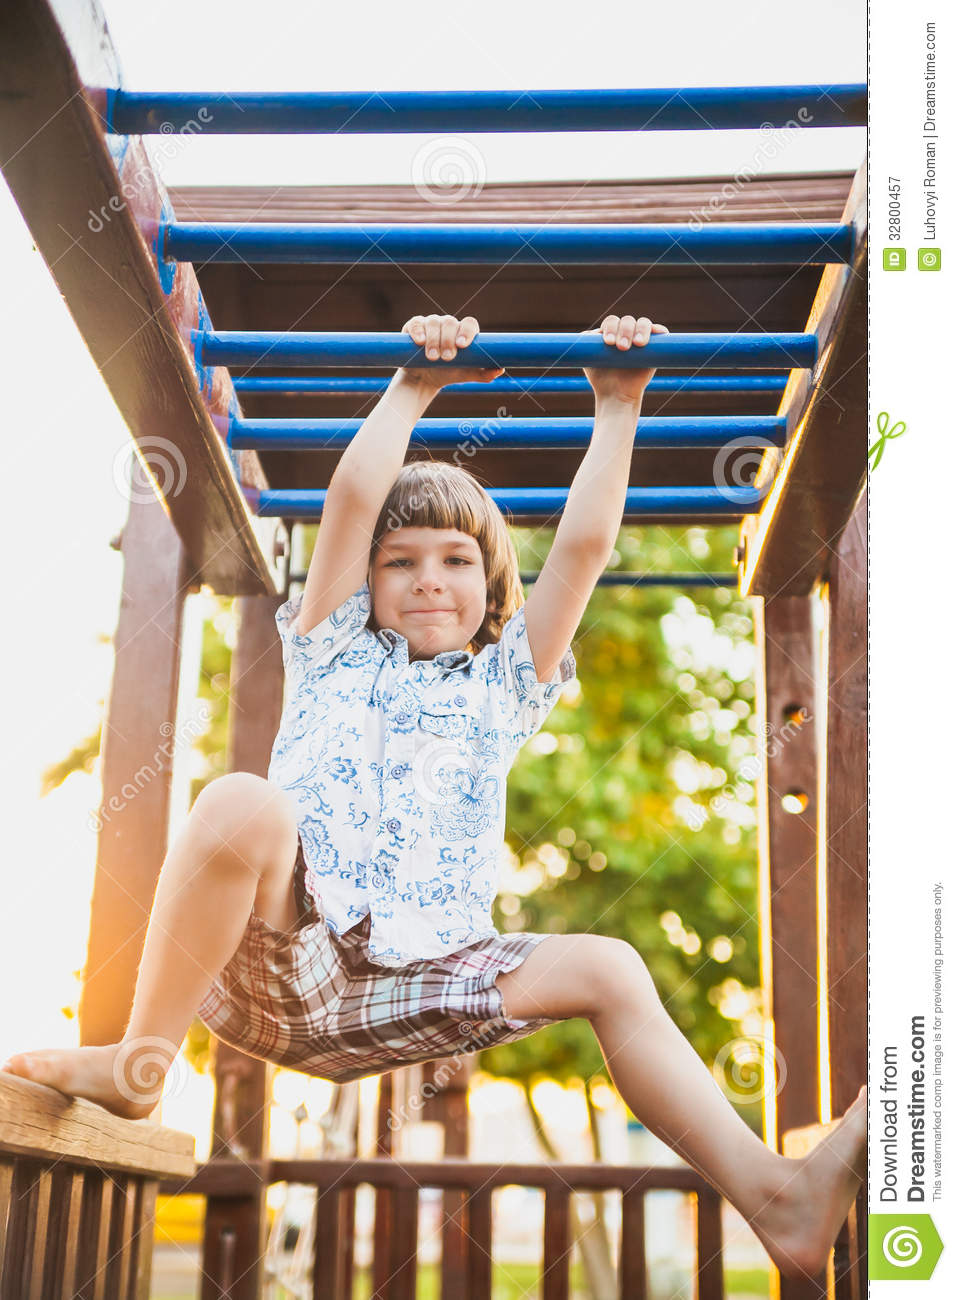 Boy Playing On The Playground Royalty Free Stock